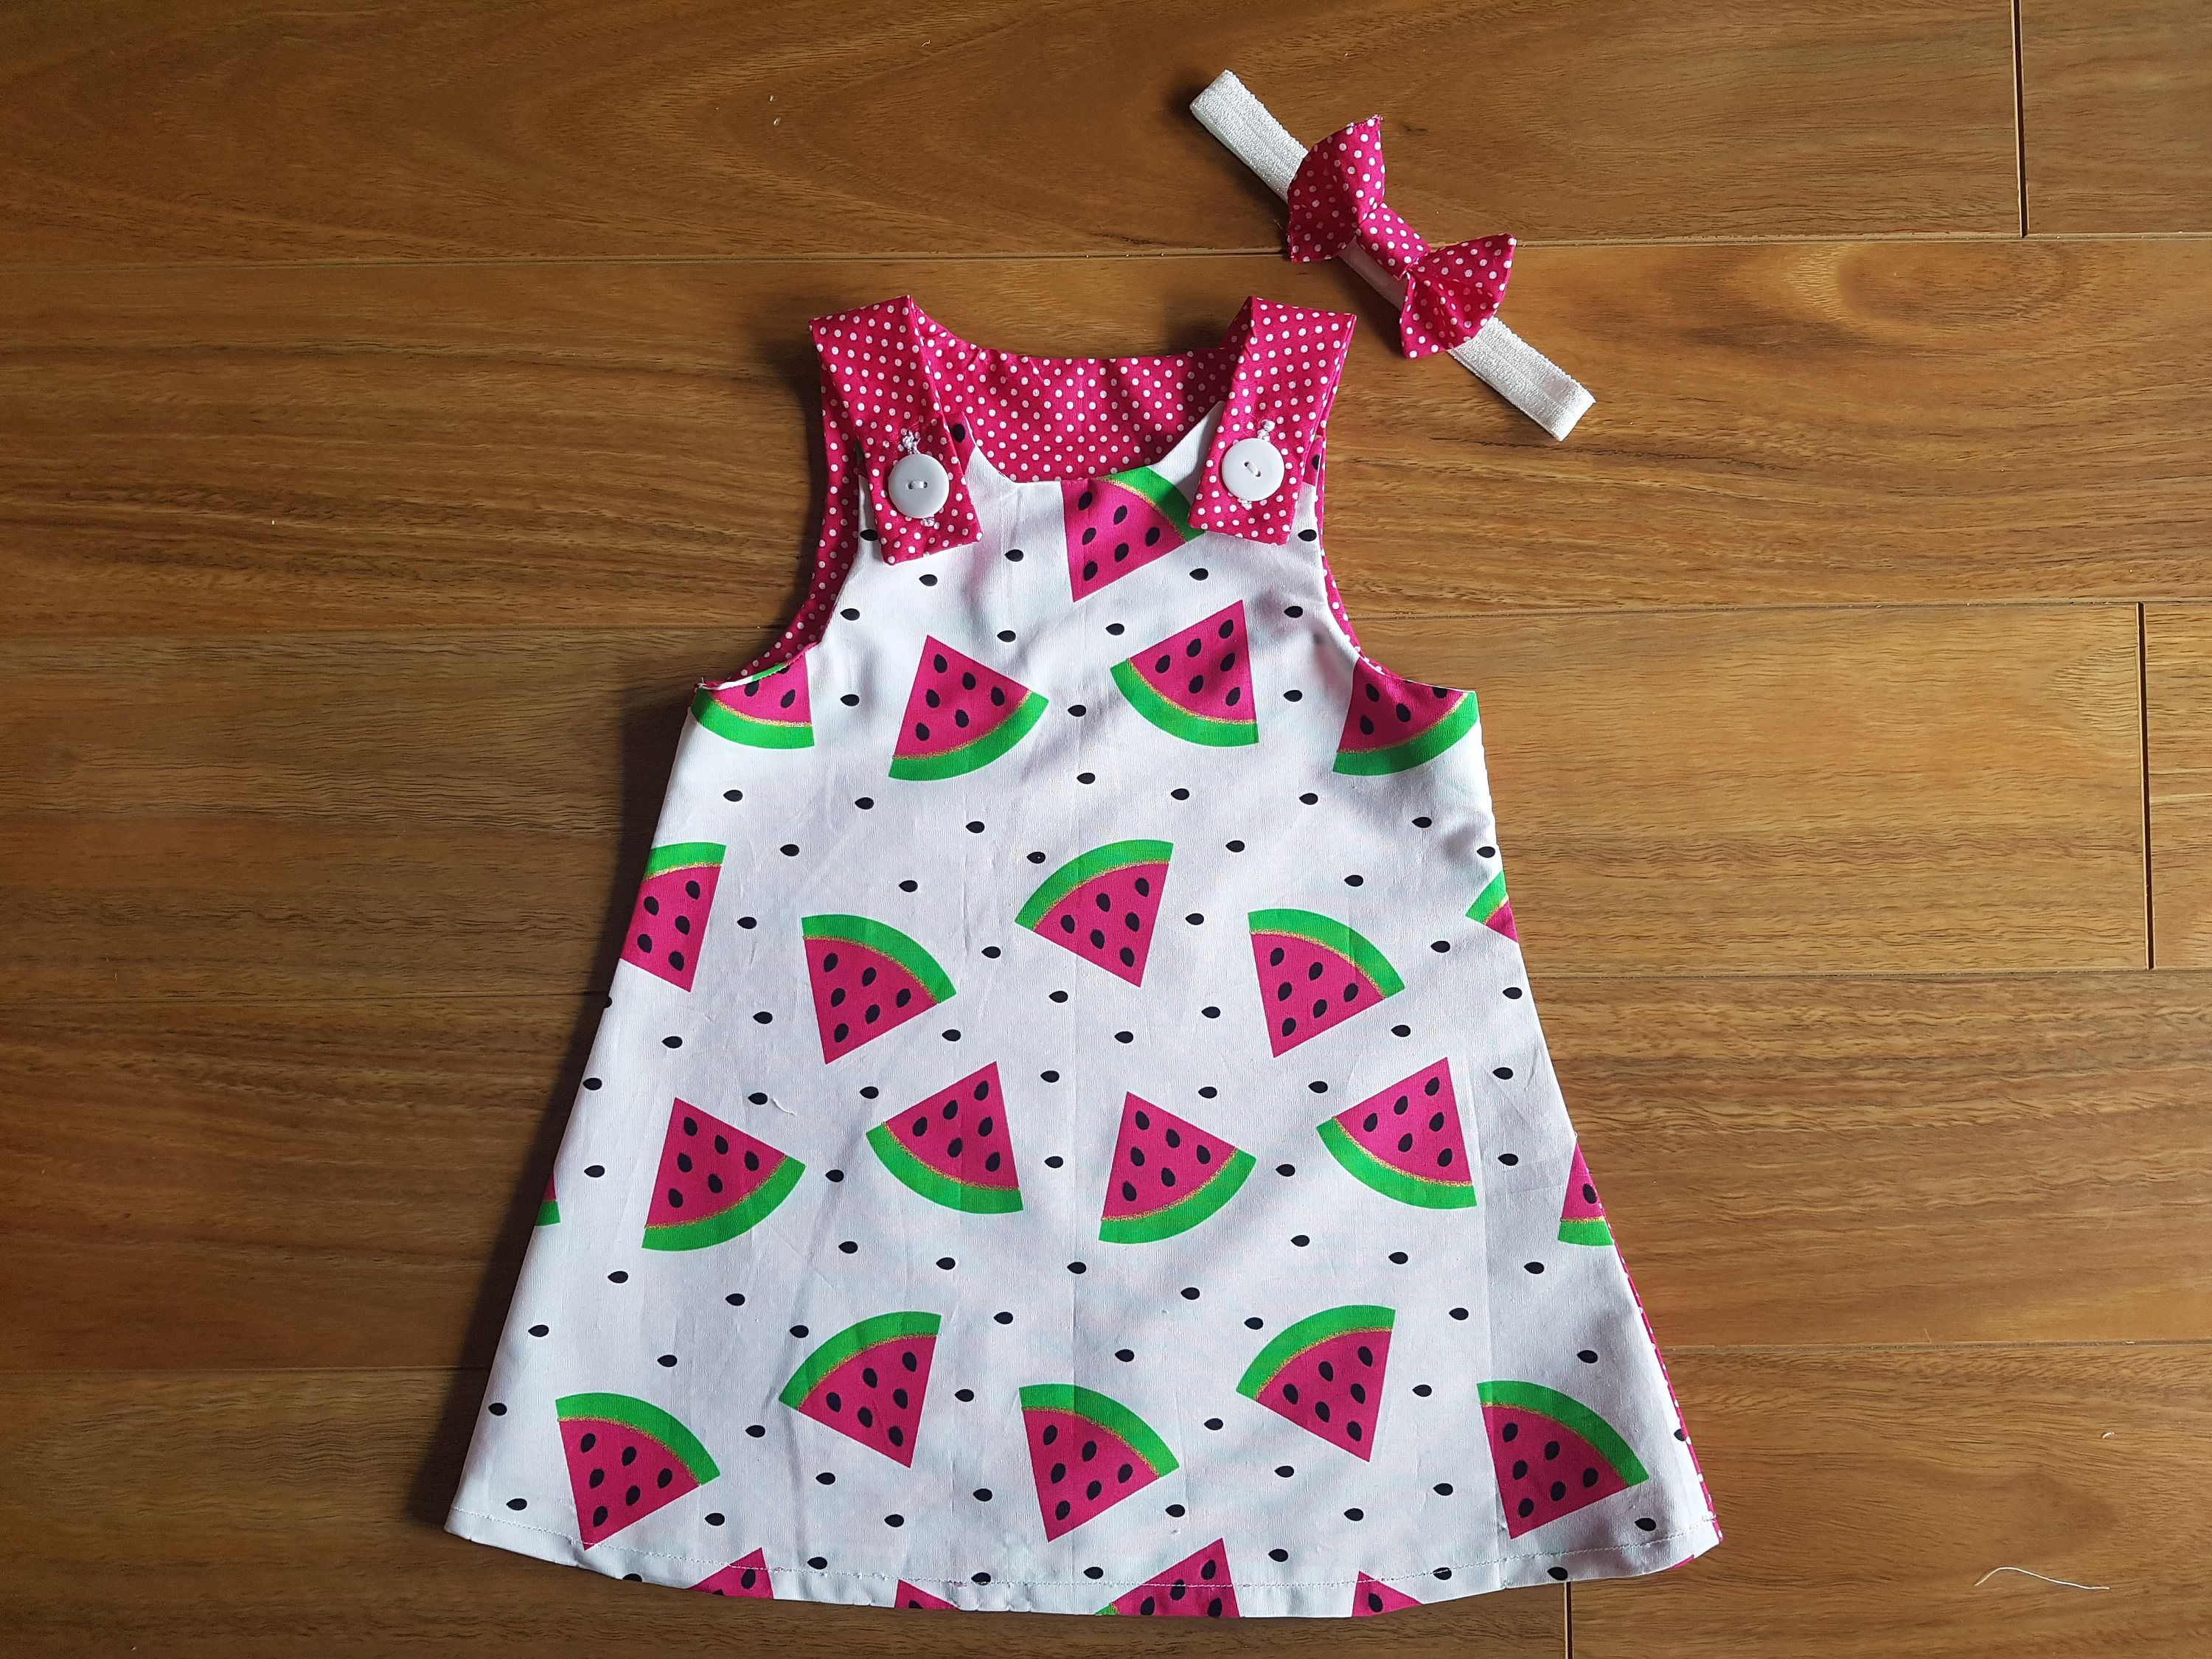 Watermelon dress baby dress girl dress polka dot dress baby